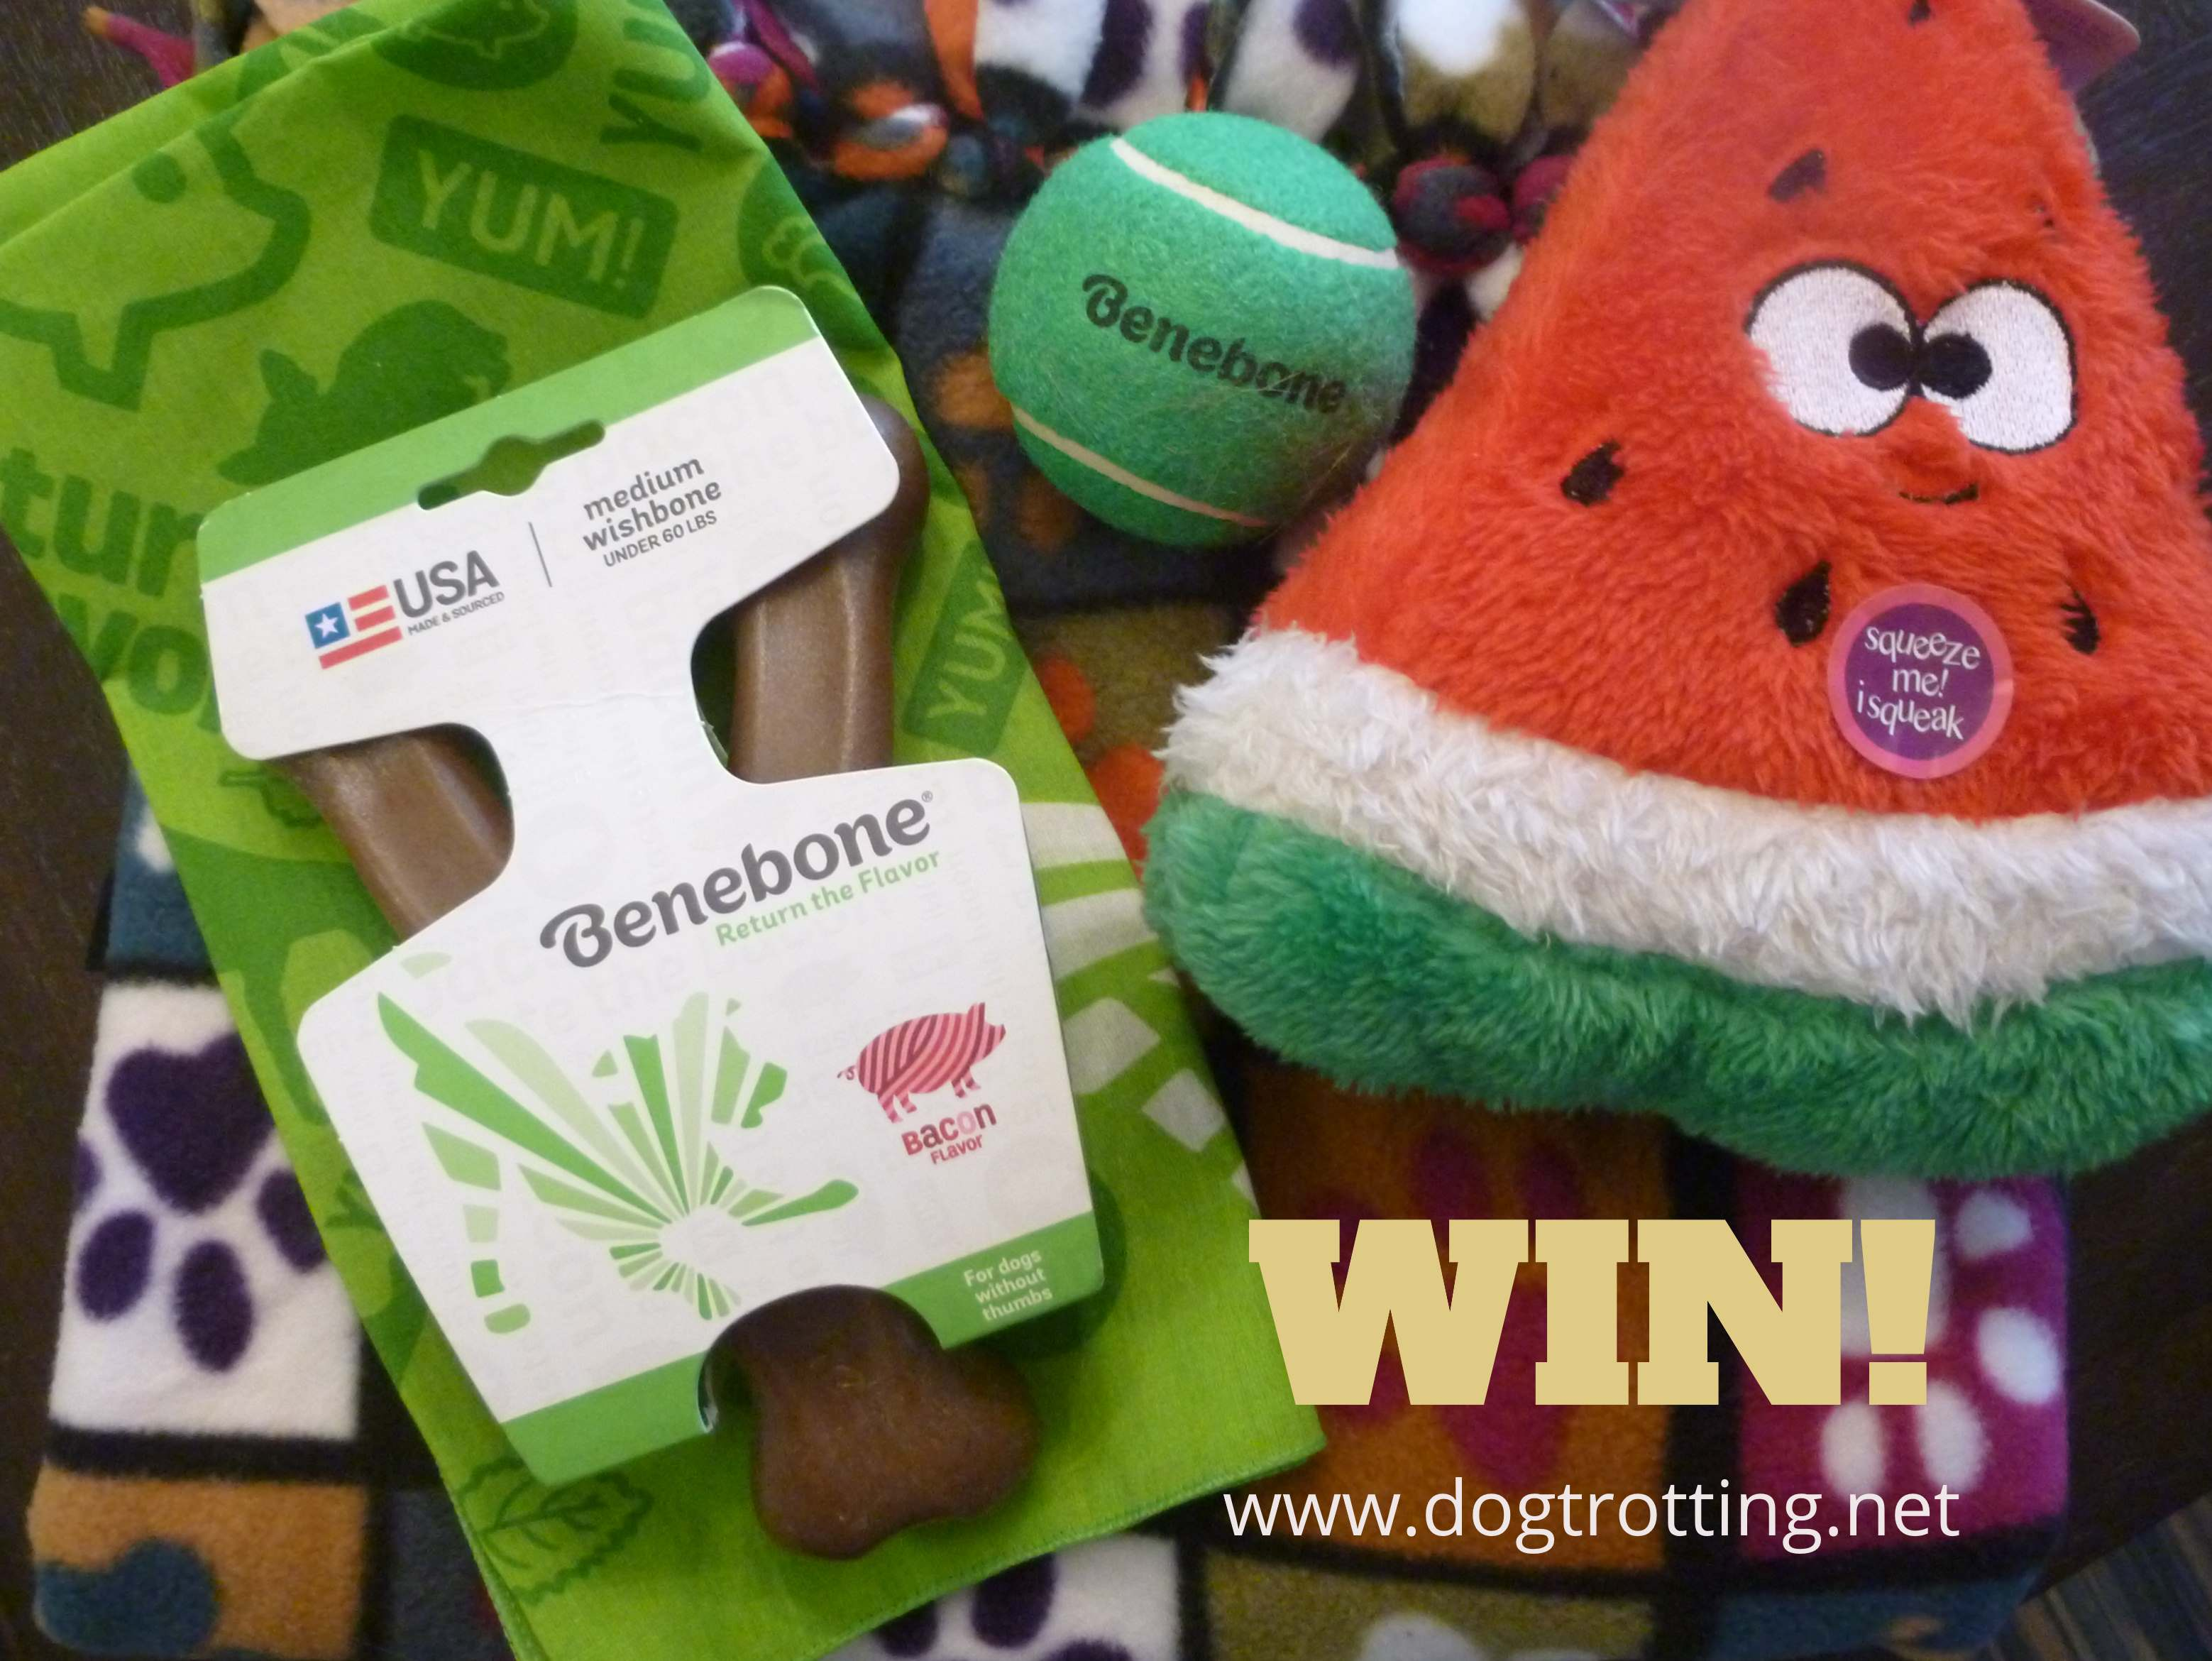 win Benebone prize pack - Benebone dog chew with dog toy, ball and blanket